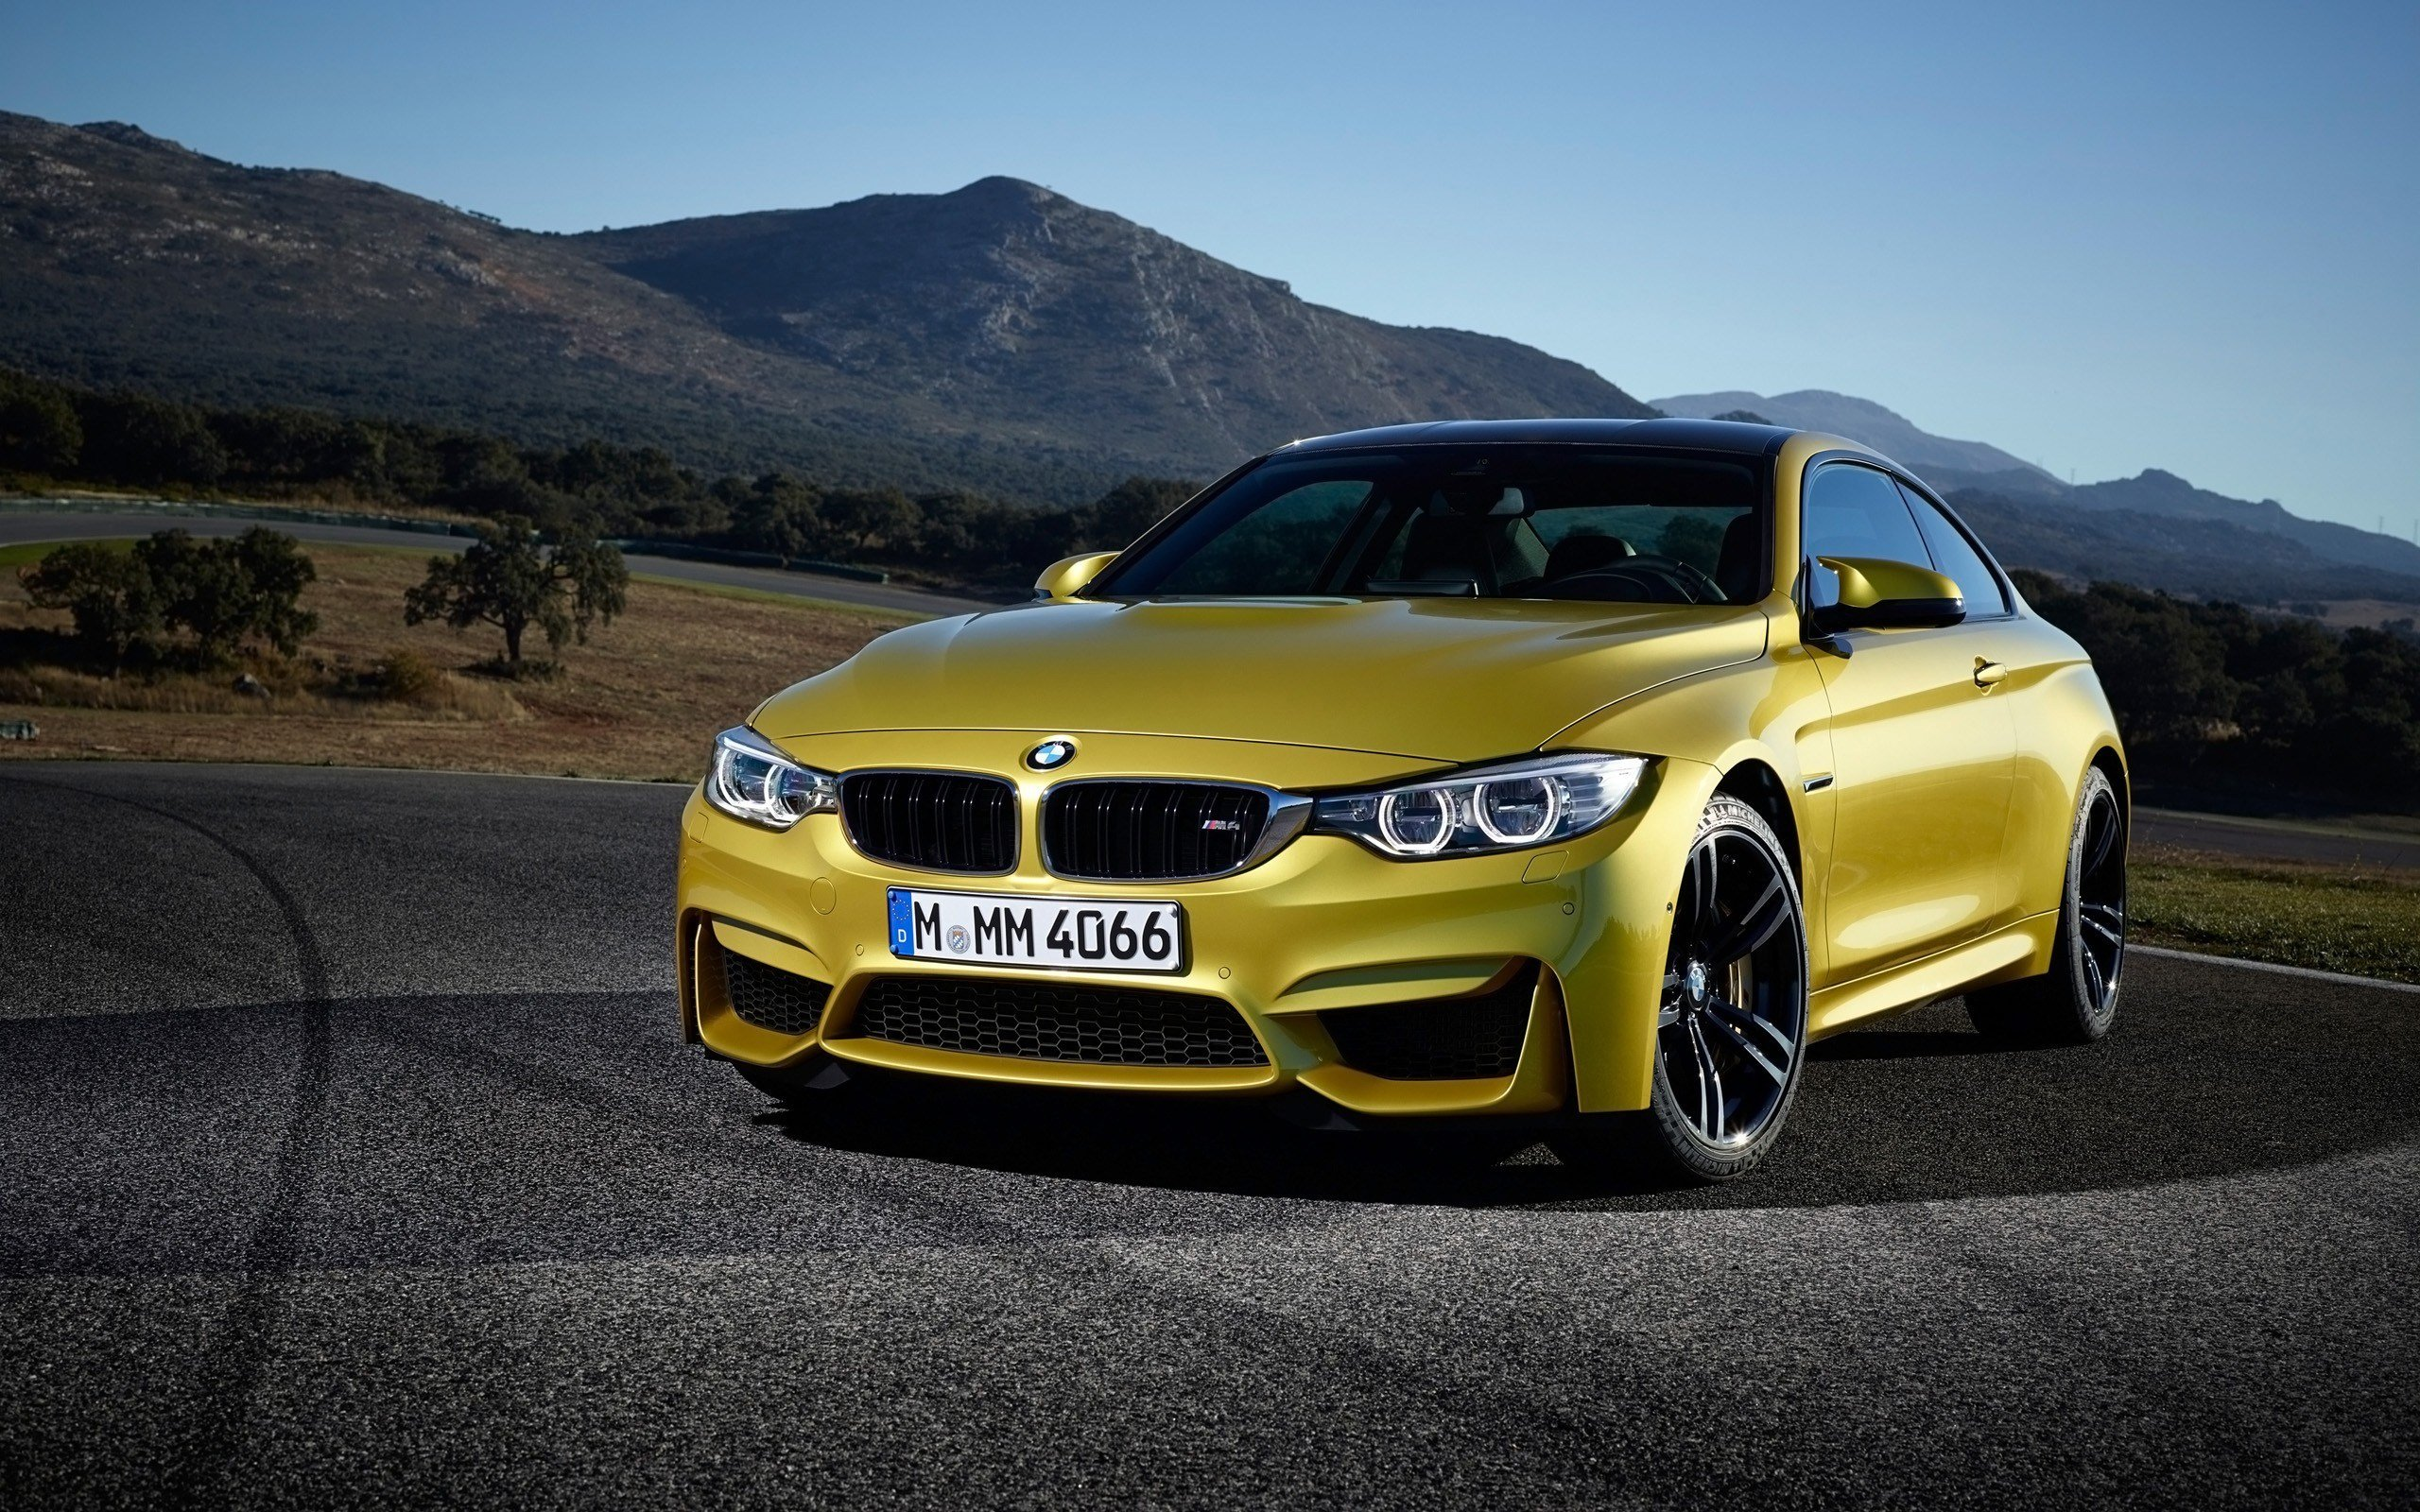 Latest 2014 Bmw M4 Coupe Wallpaper Hd Car Wallpapers Id 3954 Free Download